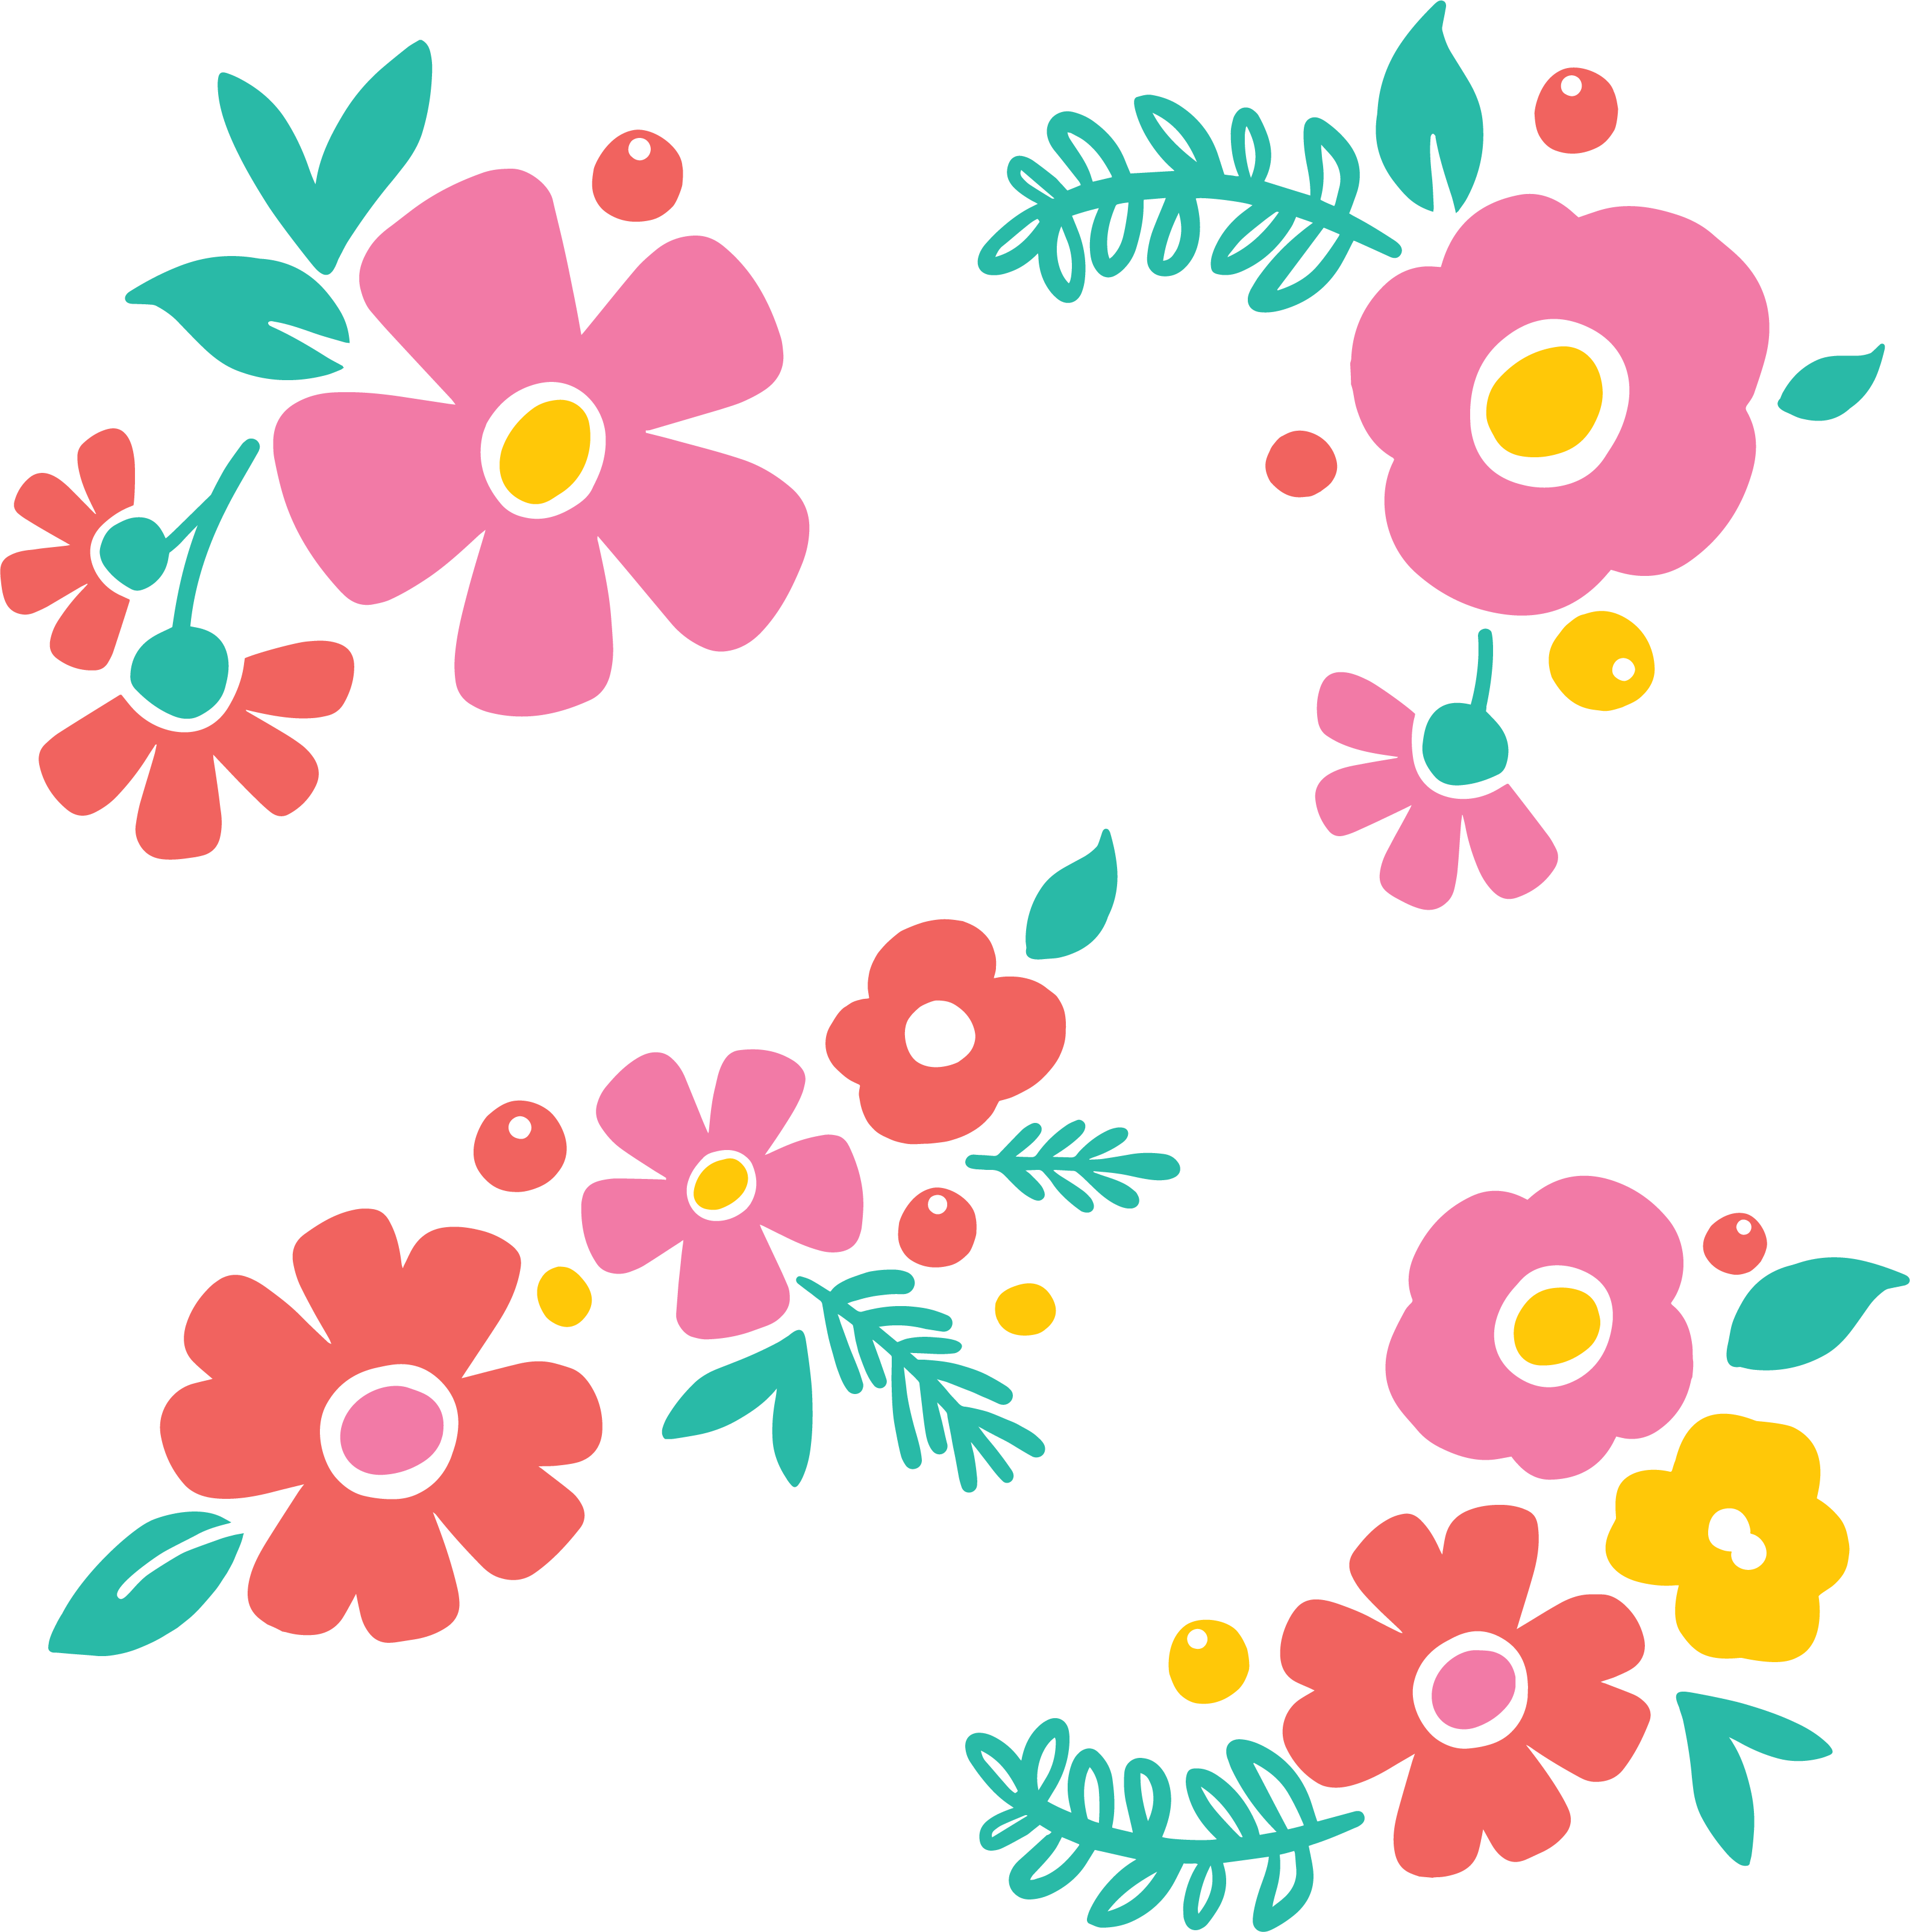 Free Svg Flower Cut File For Silhouette Or Cricut Persia Lou